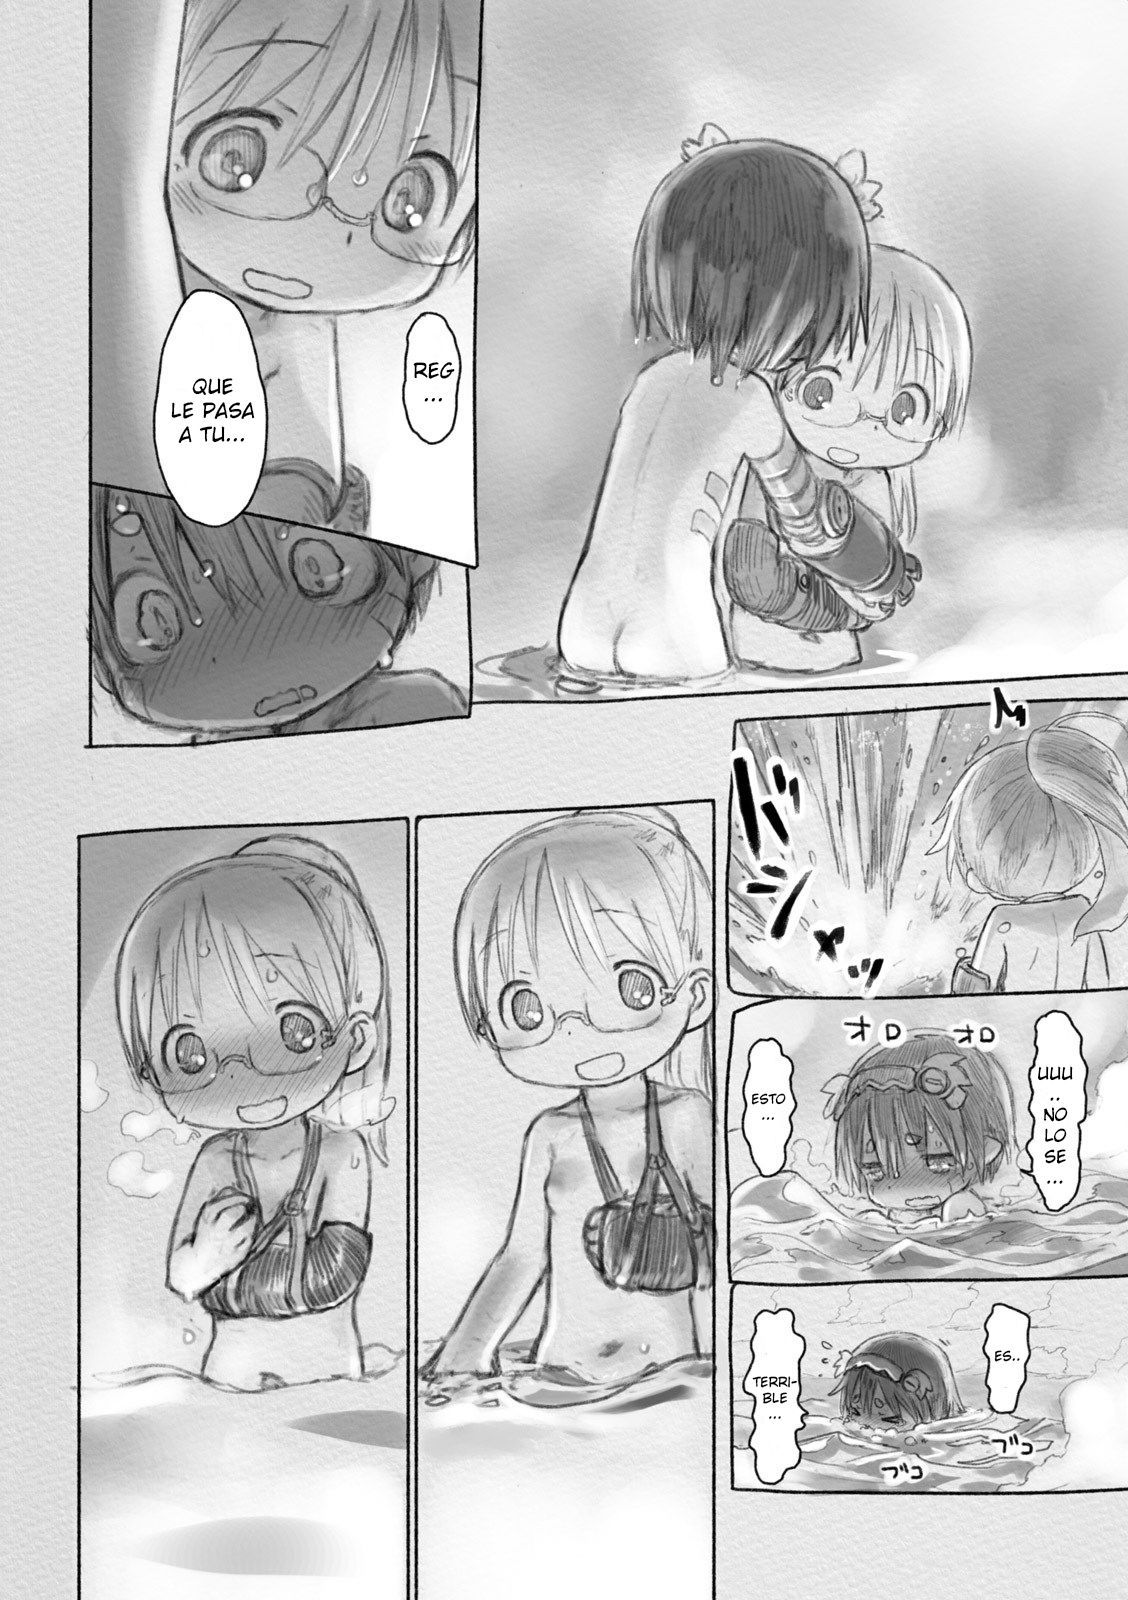 Made in Abyss  2500 por ThatOneSpider  no mames  Manga Anime y Abyss anime